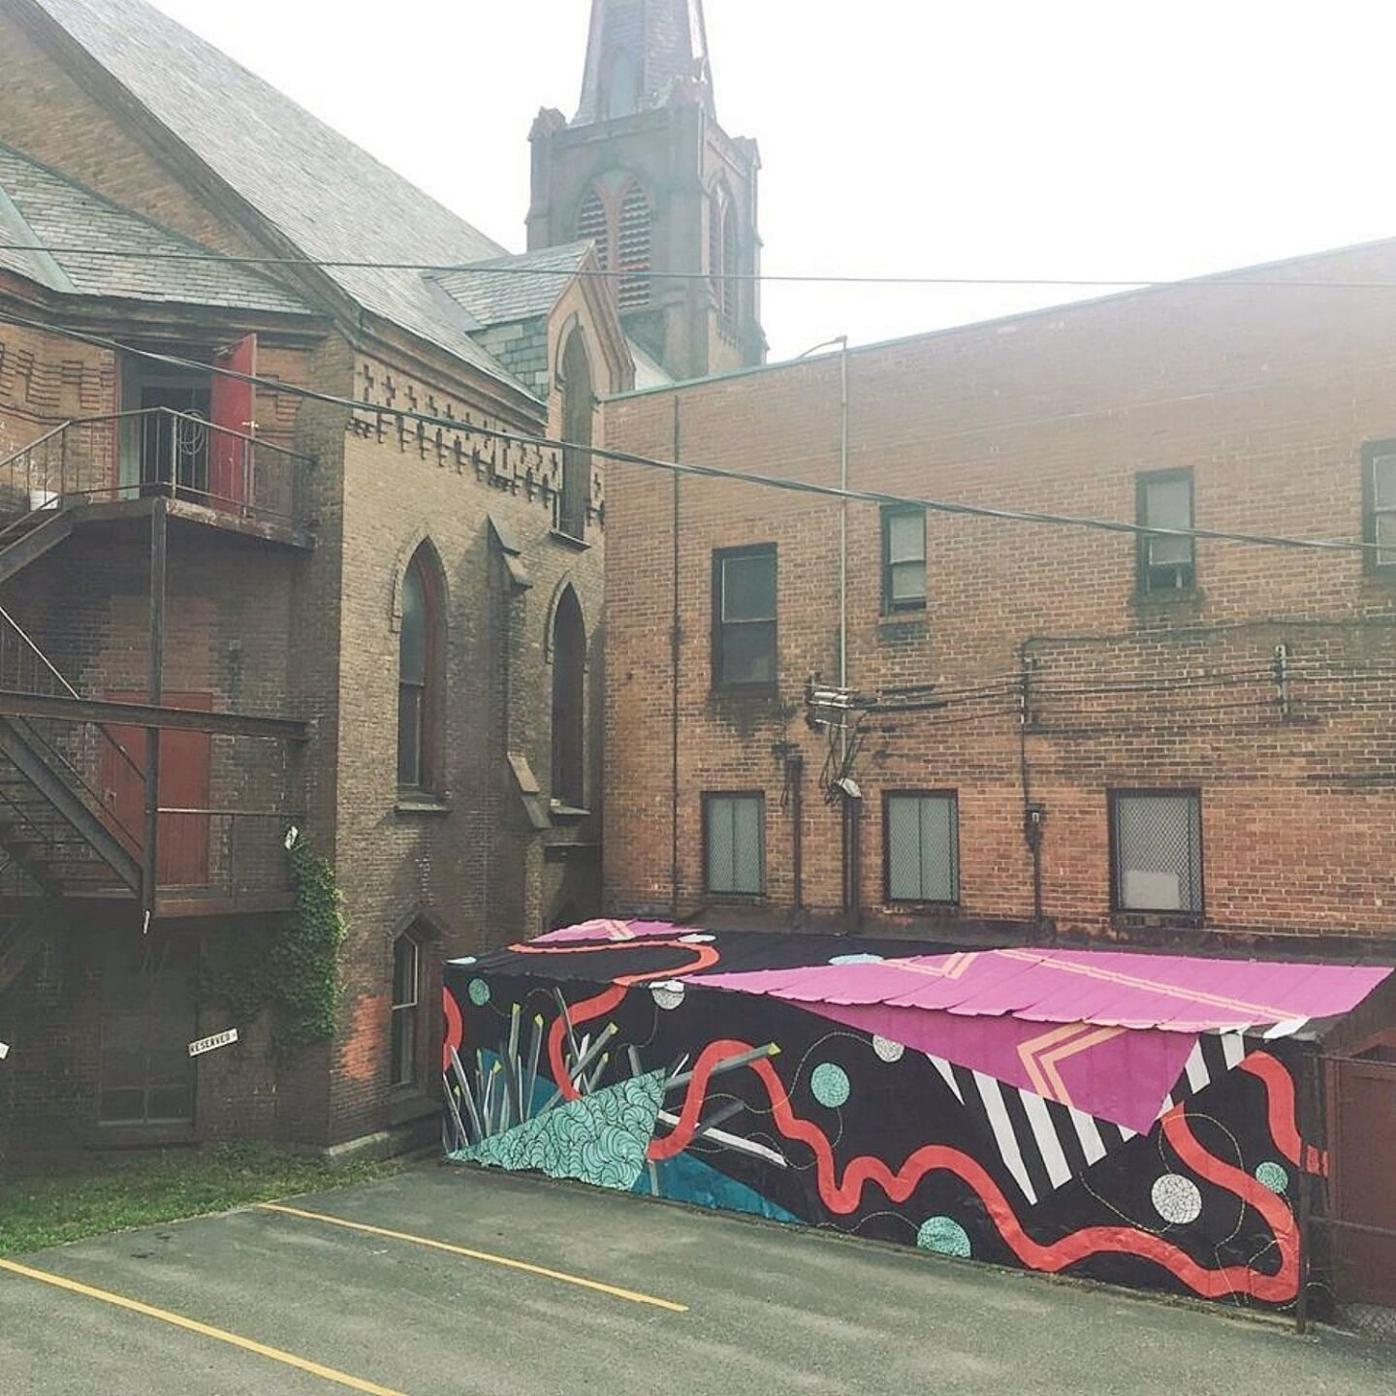 Adding art and color to downtown Brattleboro